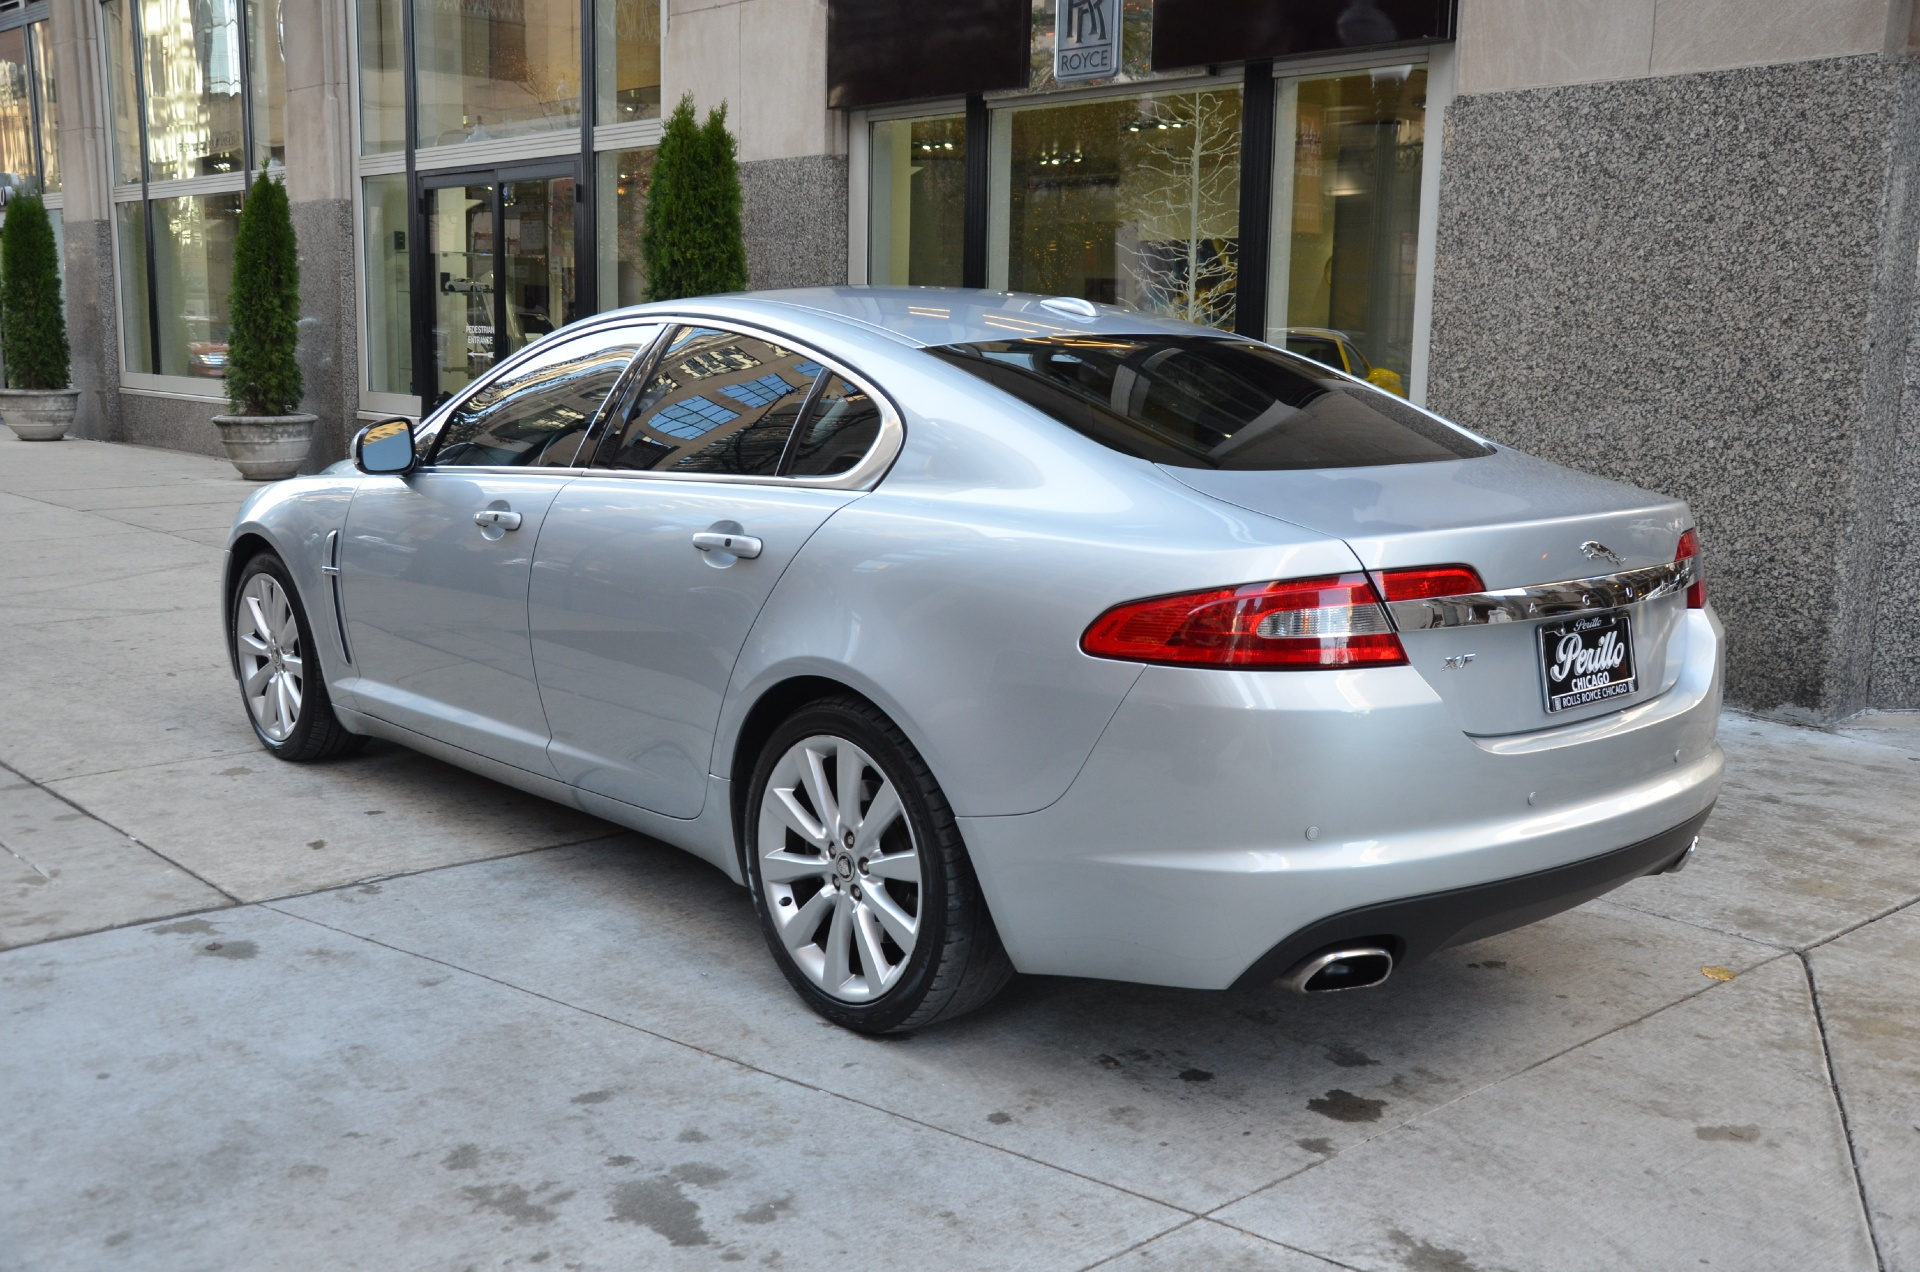 2010 jaguar xf premium stock b709aaa for sale near chicago il il jaguar dealer. Black Bedroom Furniture Sets. Home Design Ideas